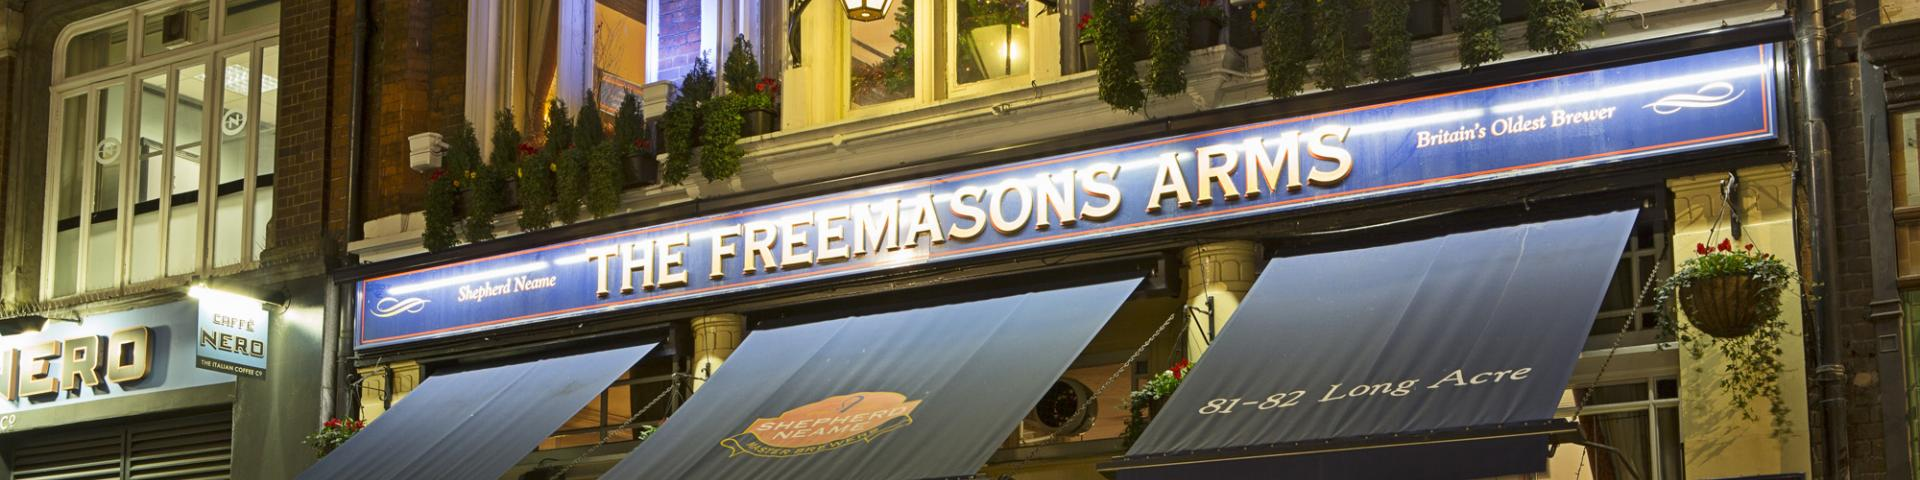 The Freemasons Arms Covent Garden At Night